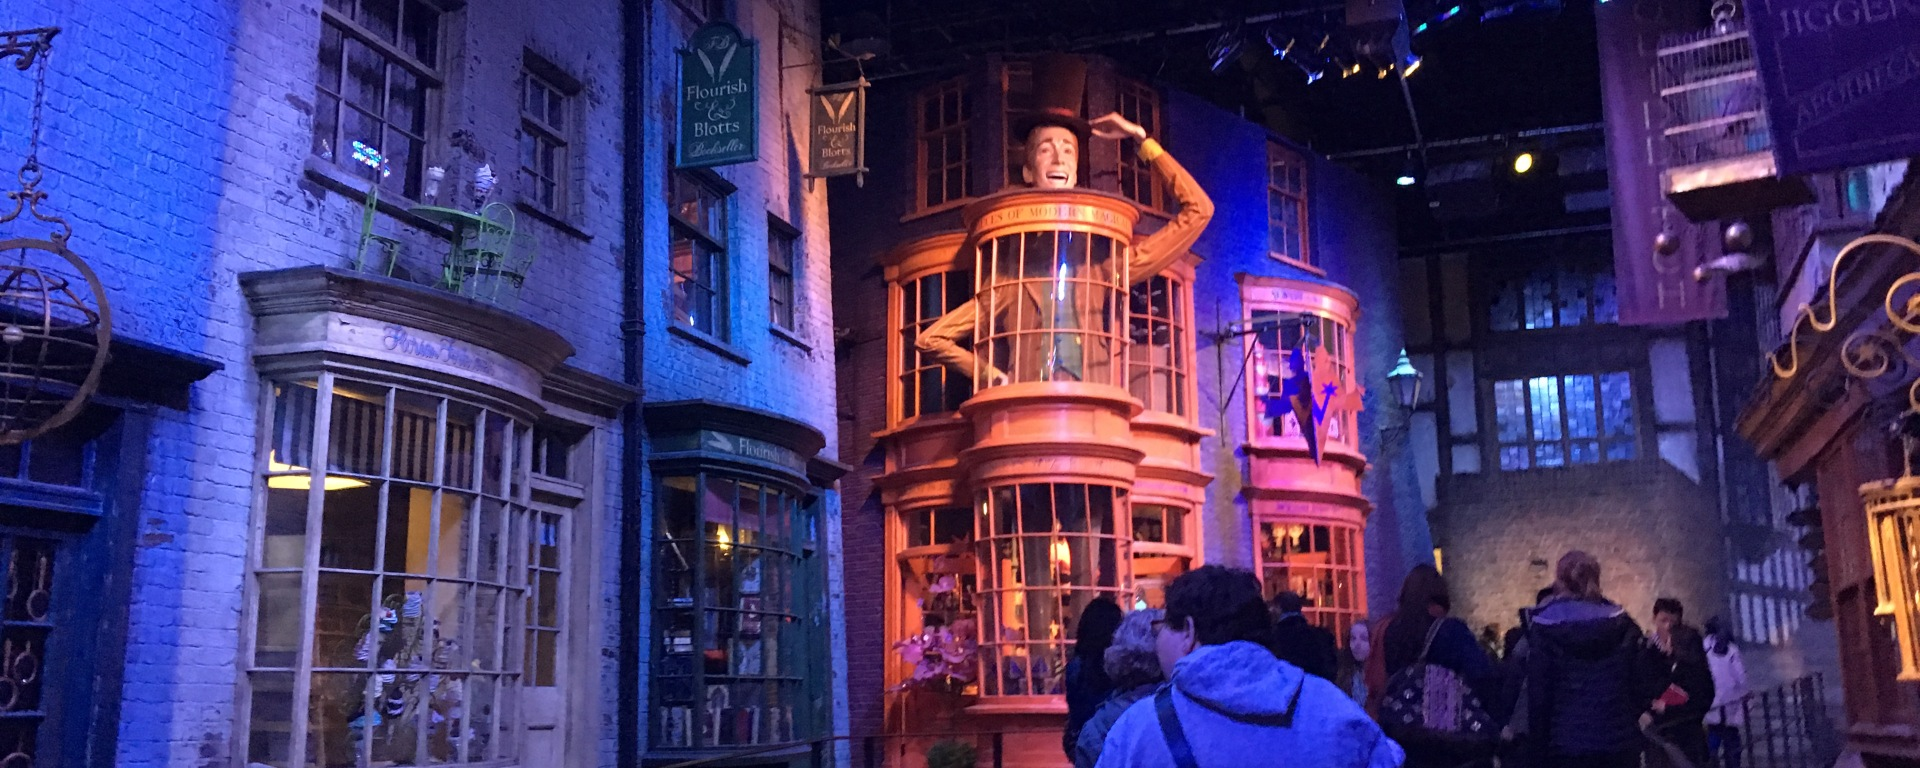 My Gluten Free Guide to the Harry Potter Studio Tour in London